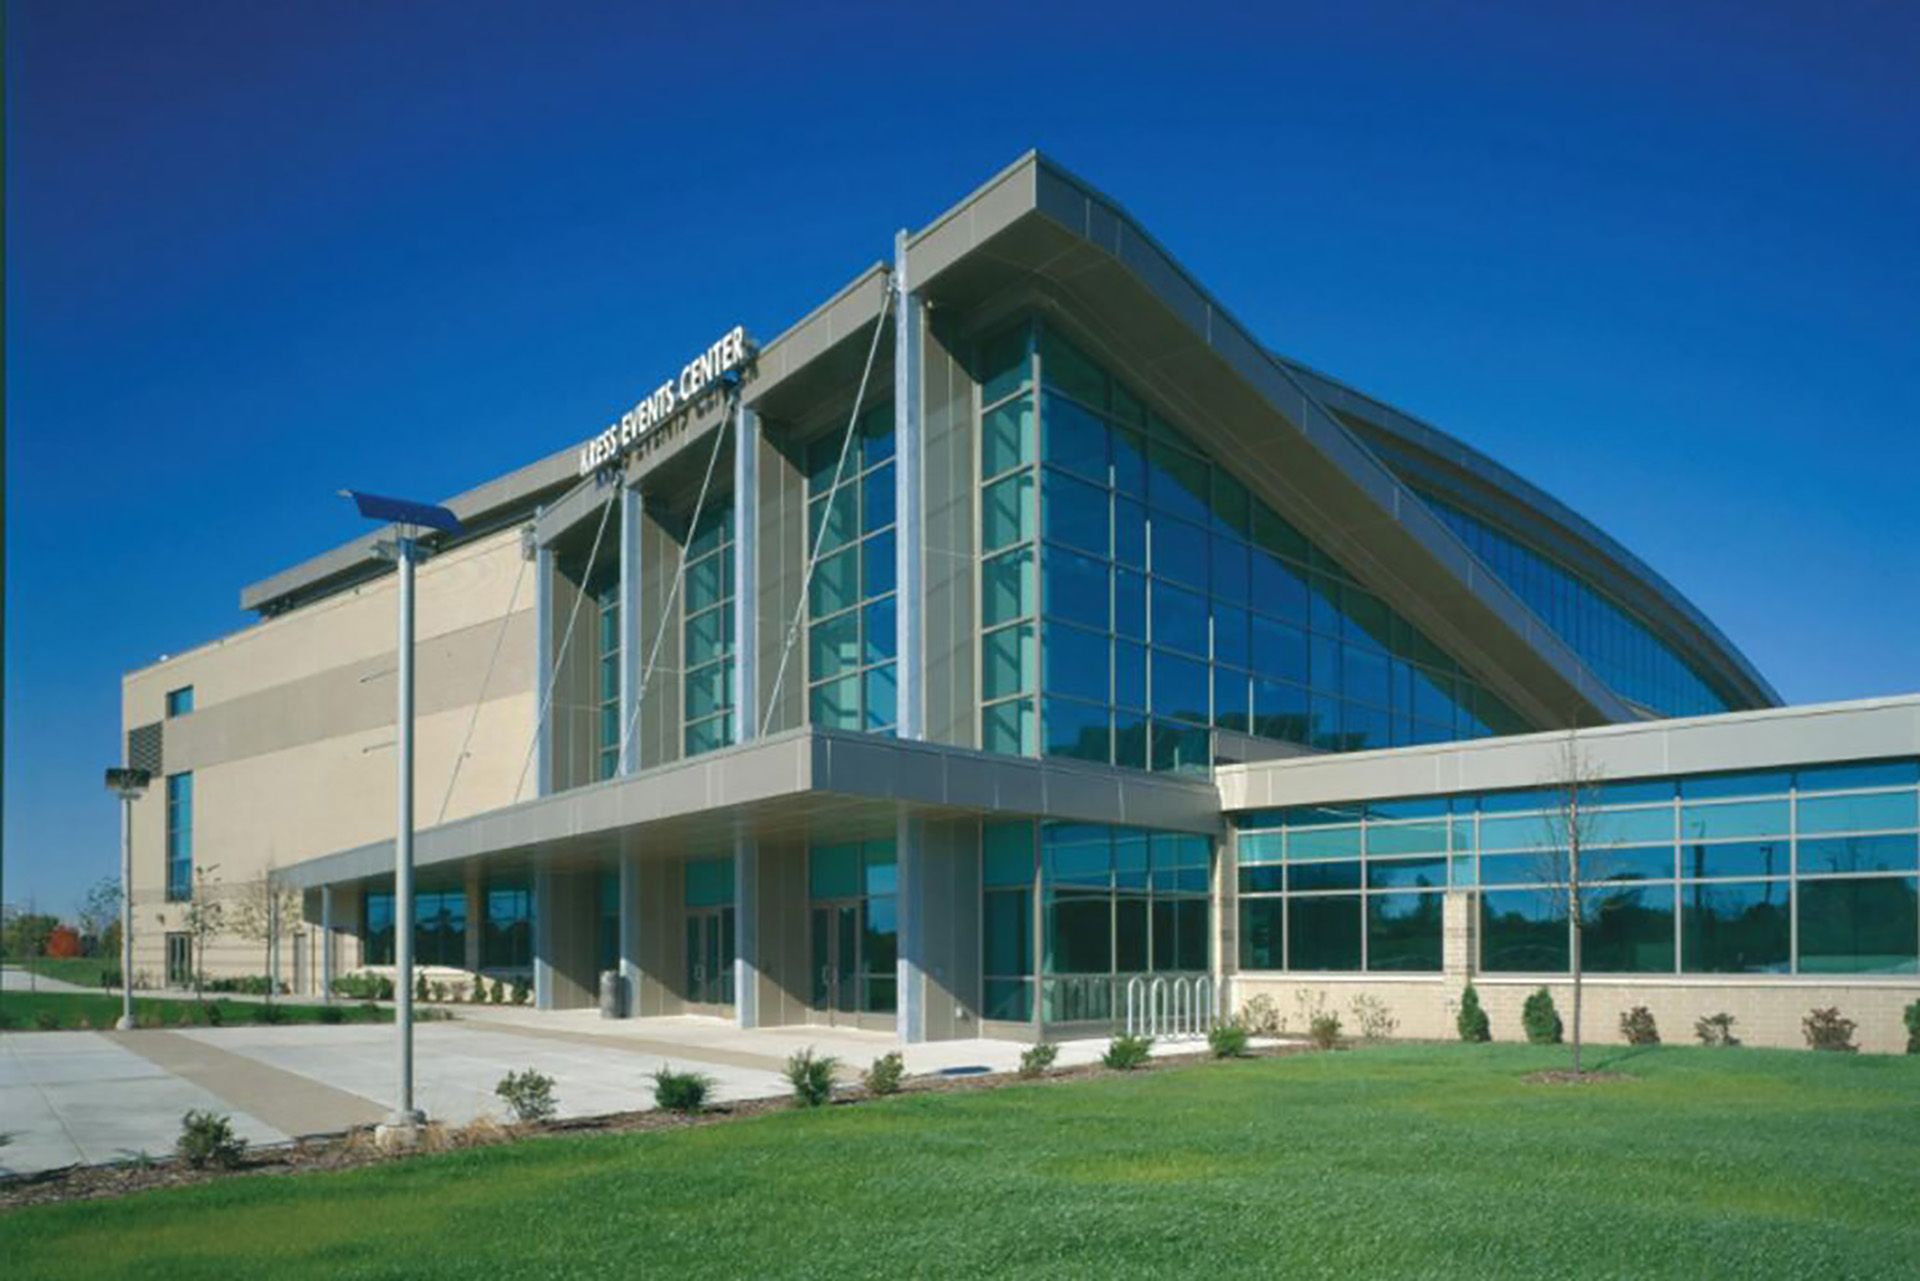 University of Wisconsin-Green Bay Kress Events Center